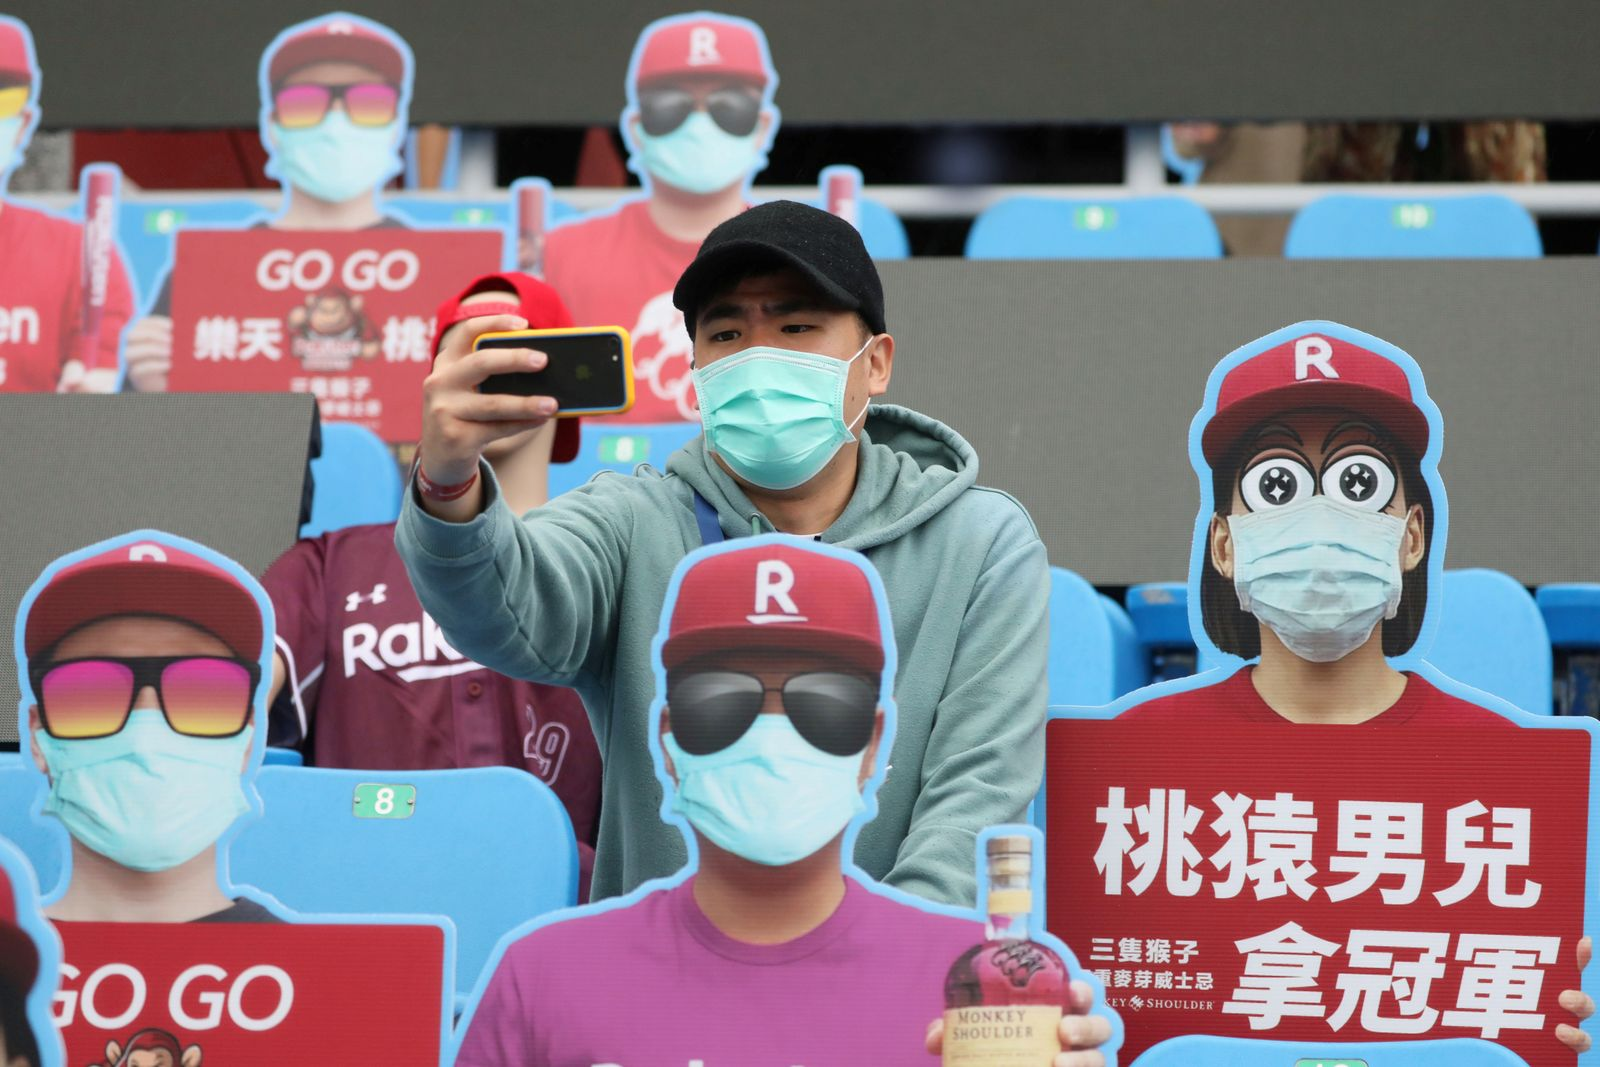 A man takes a selfie with the dummies that are used as replacements of the audience due to the outbreak of the coronavirus disease (COVID-19) at the first professional baseball league game of the season at Taoyuan International baseball stadium